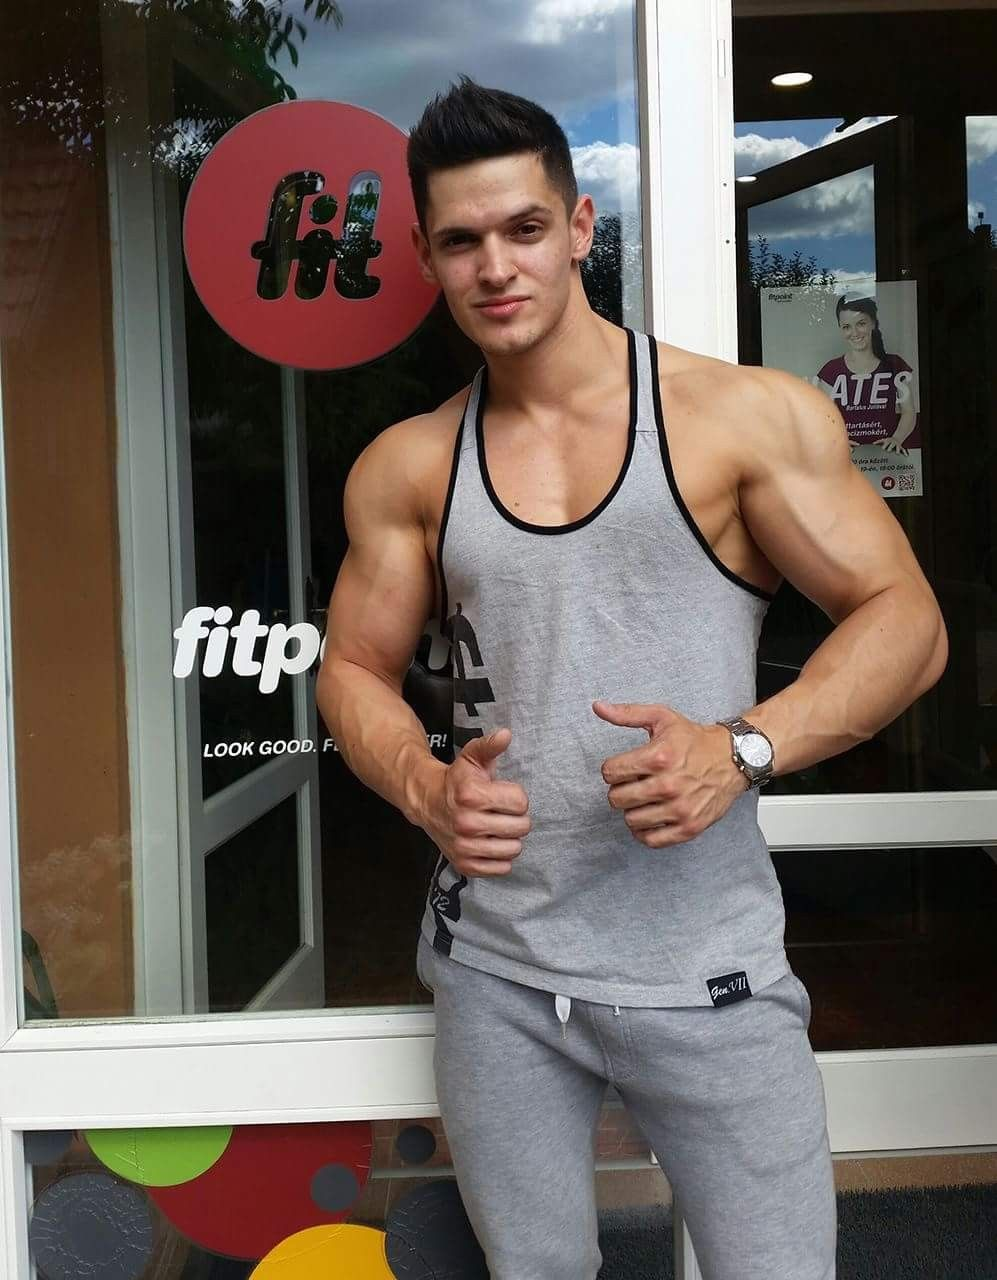 Hunk in delicious action